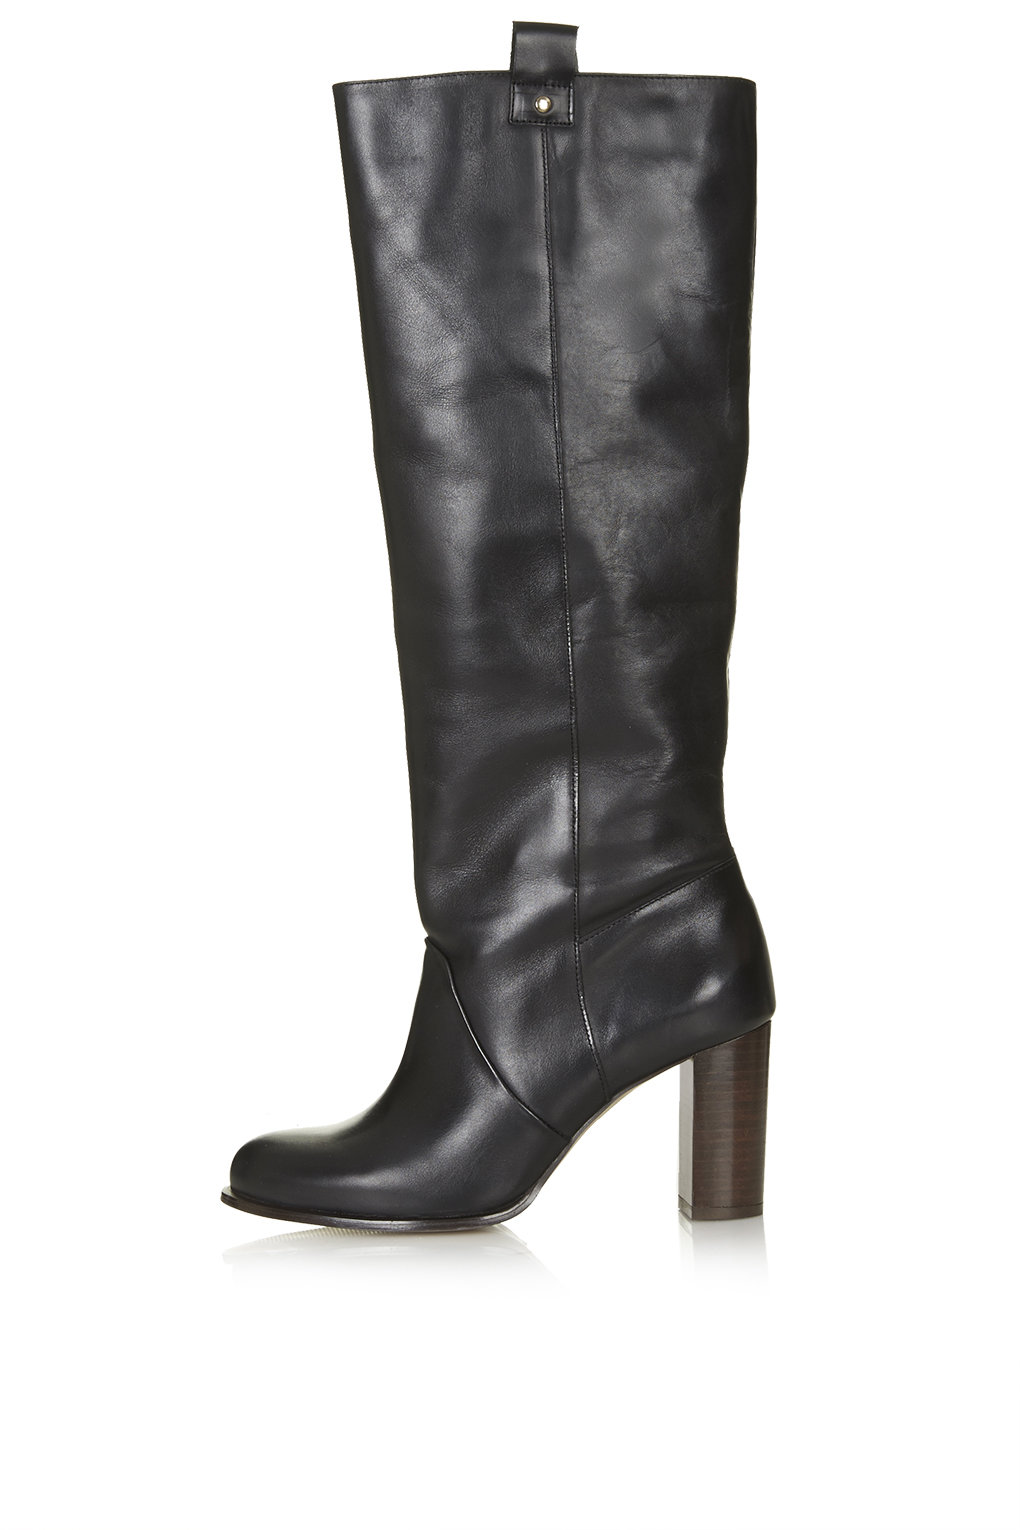 CAPTIVE '70s Straight Leg Boots - Heel Boots - Boots - Shoes